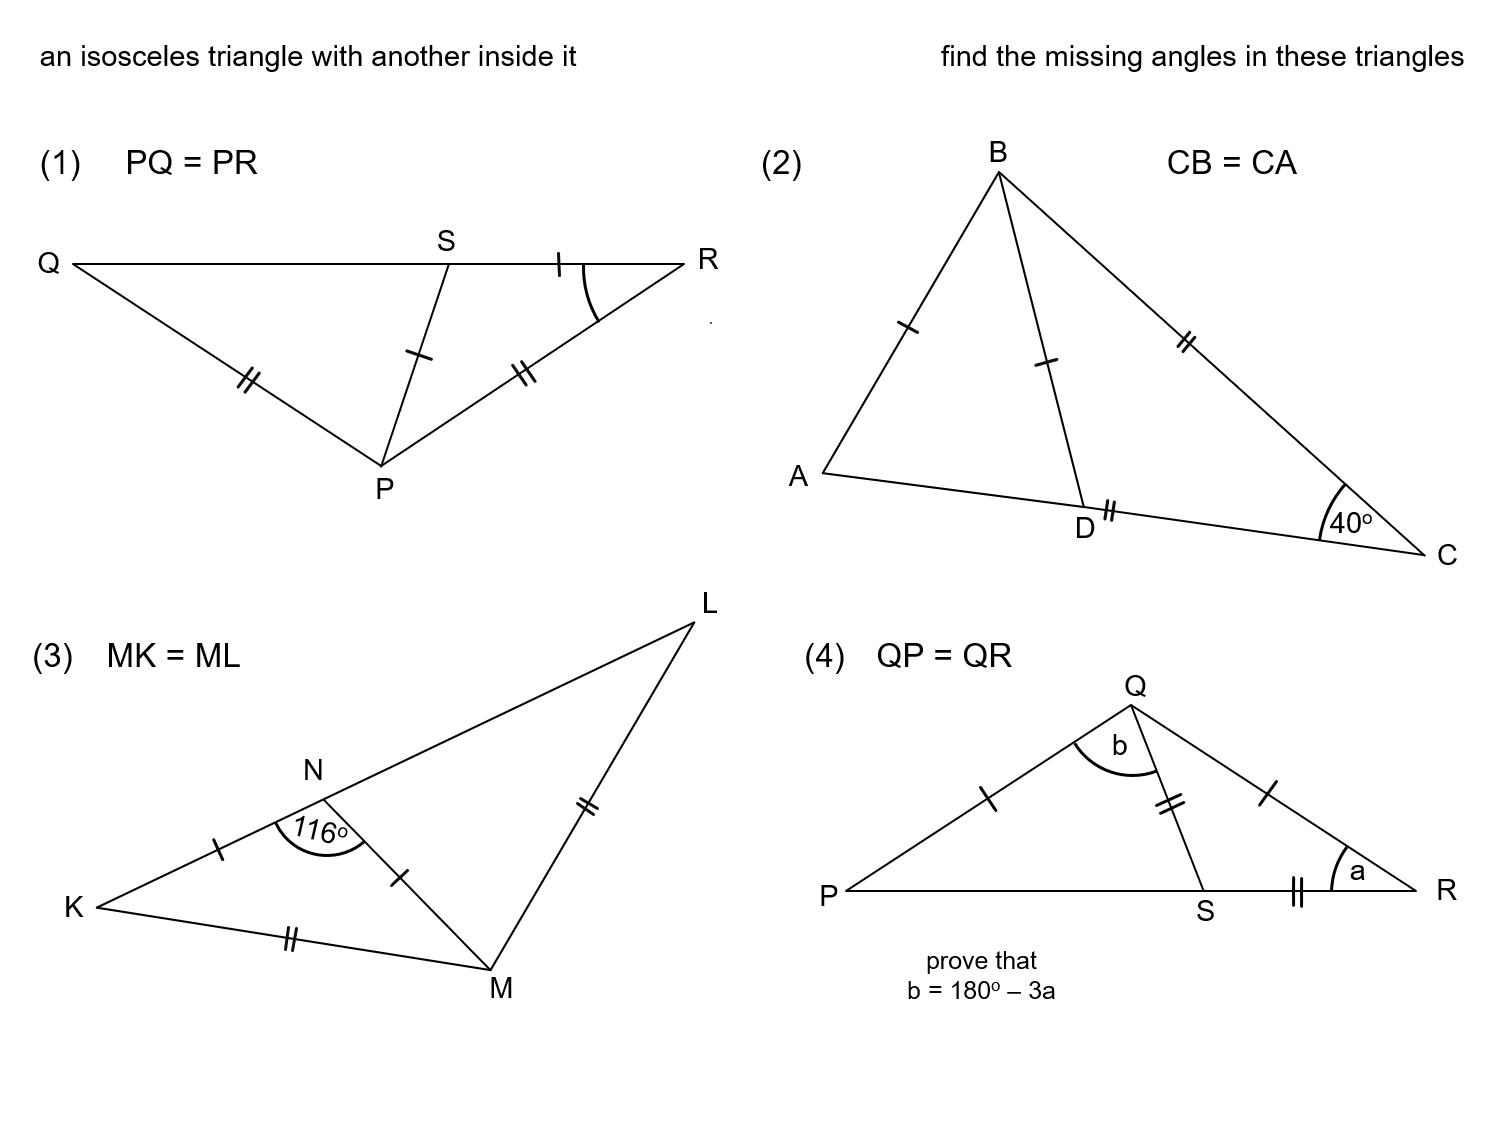 MEDIAN Don Steward mathematics teaching: two isosceles